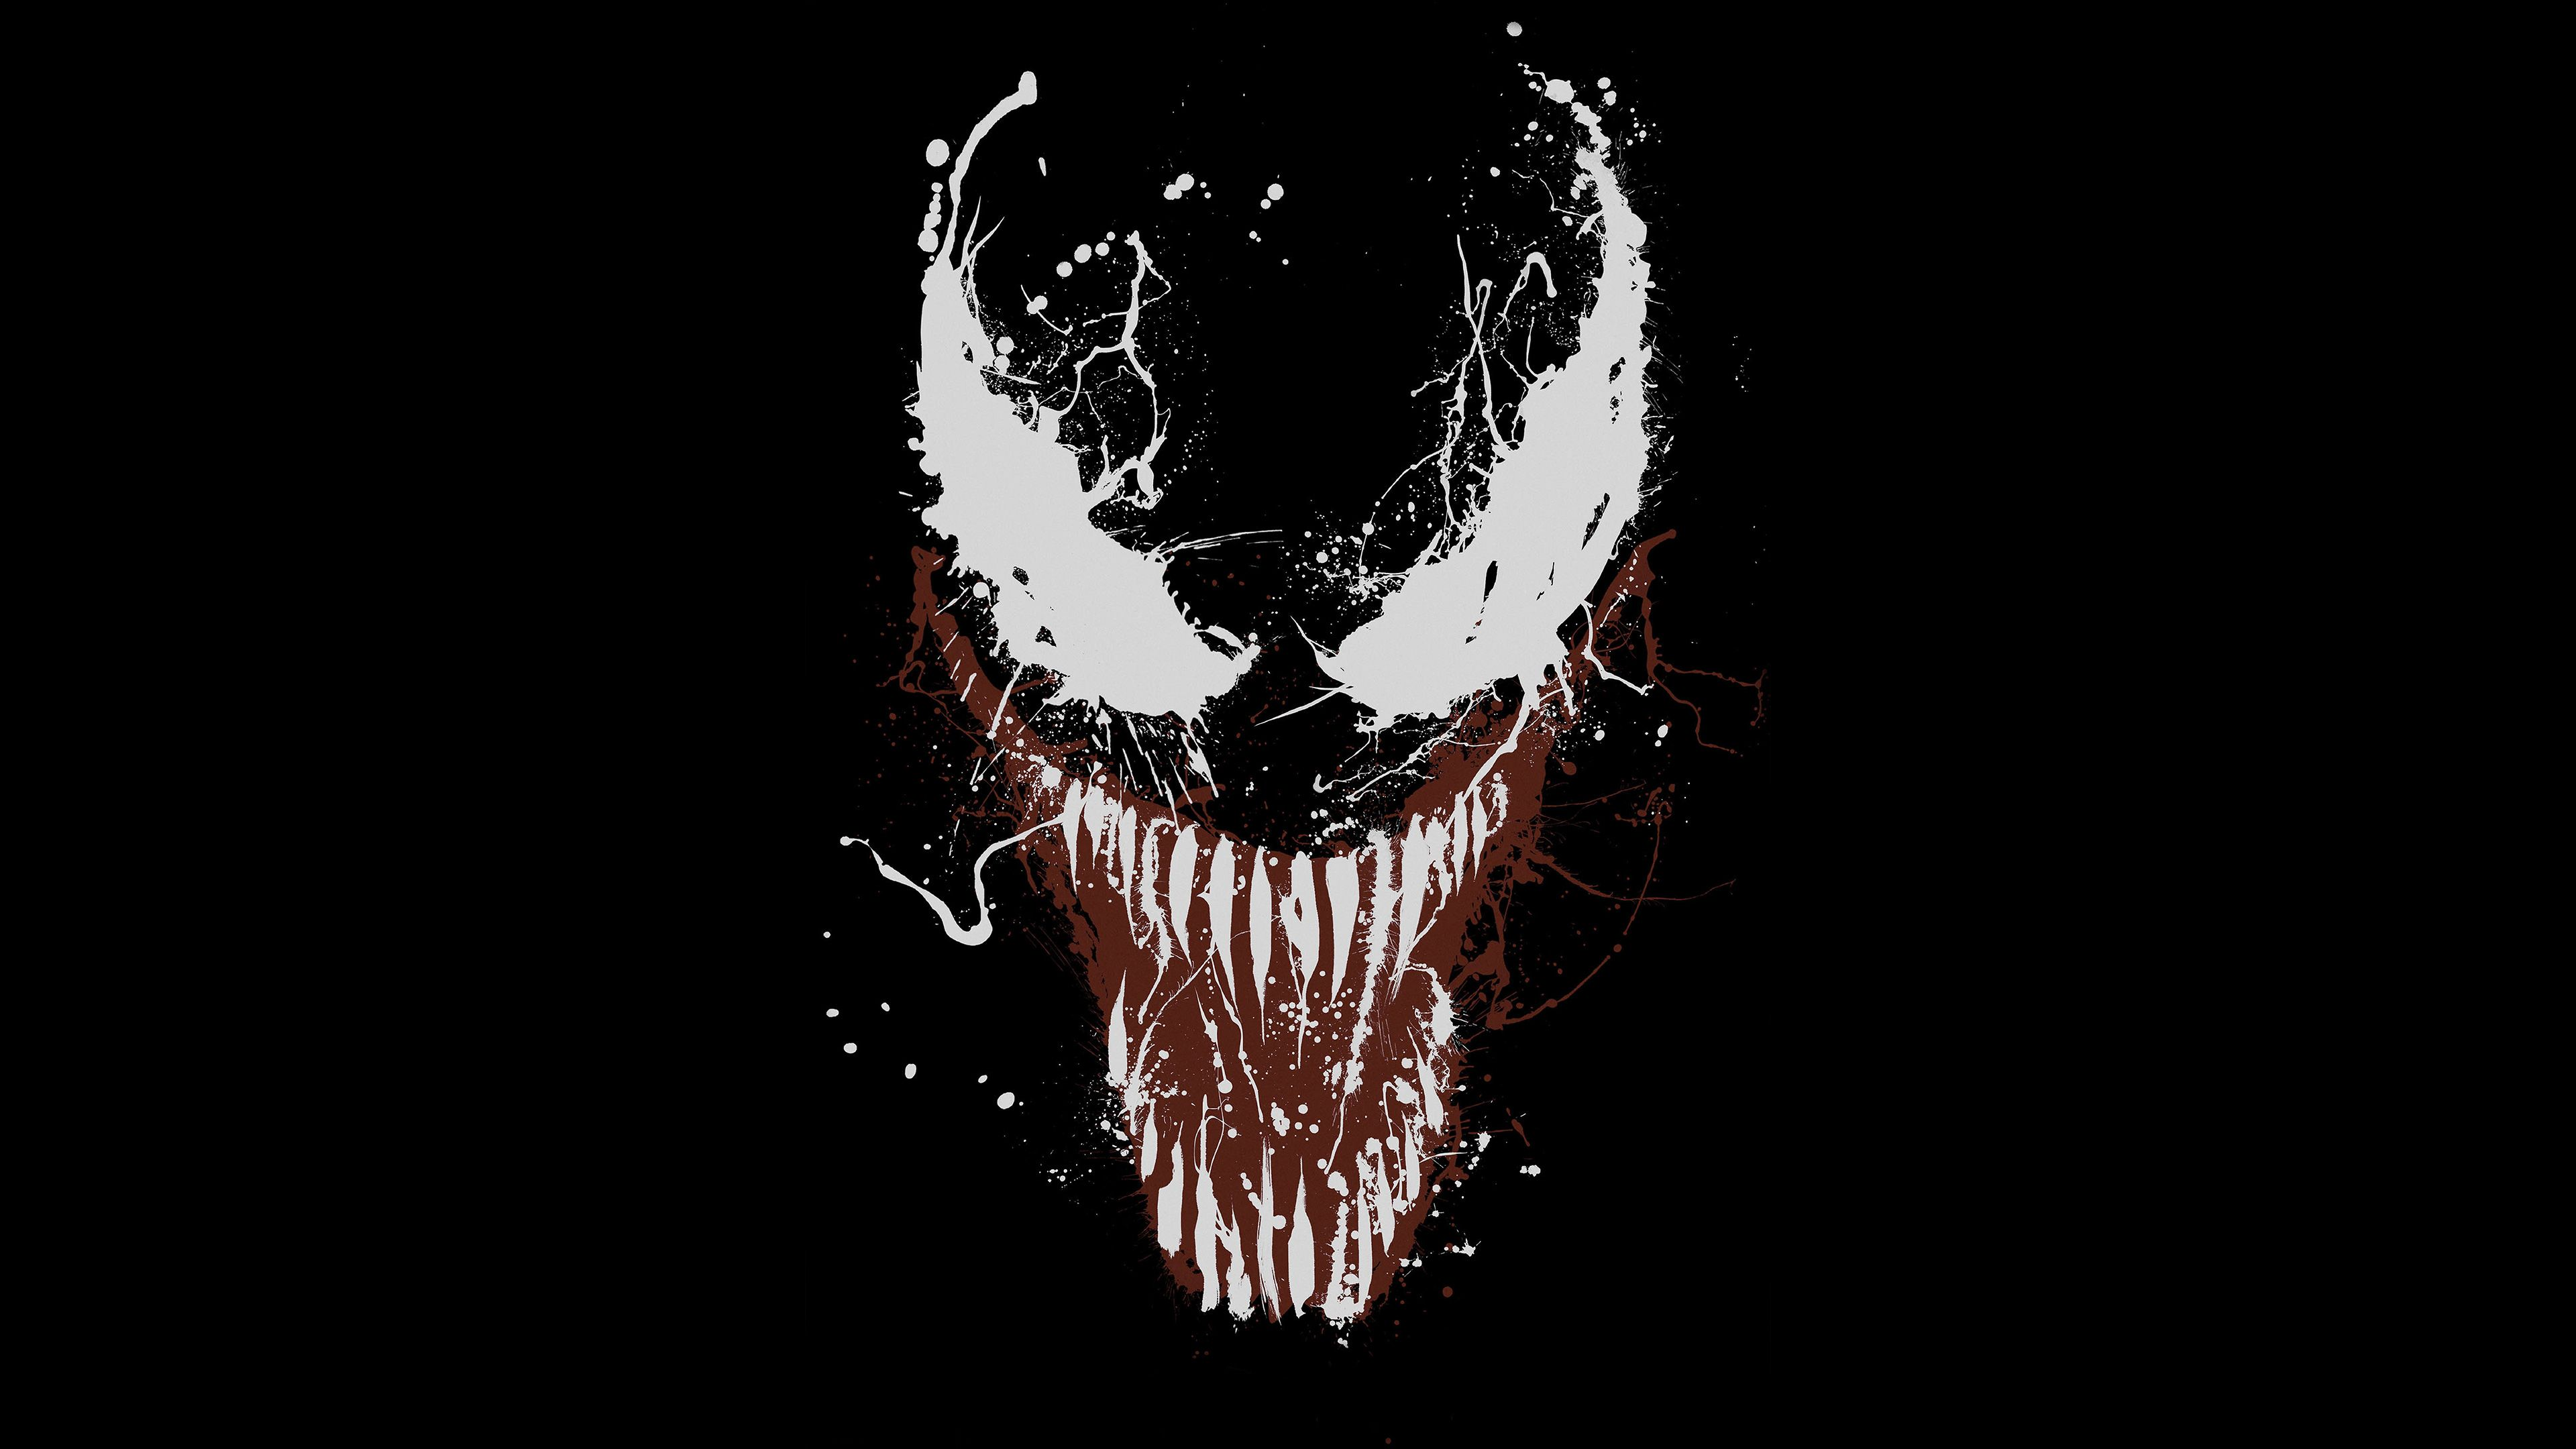 Wallpaper 4k Venom Movie Poster 2018 2018 Movies Wallpapers 4k